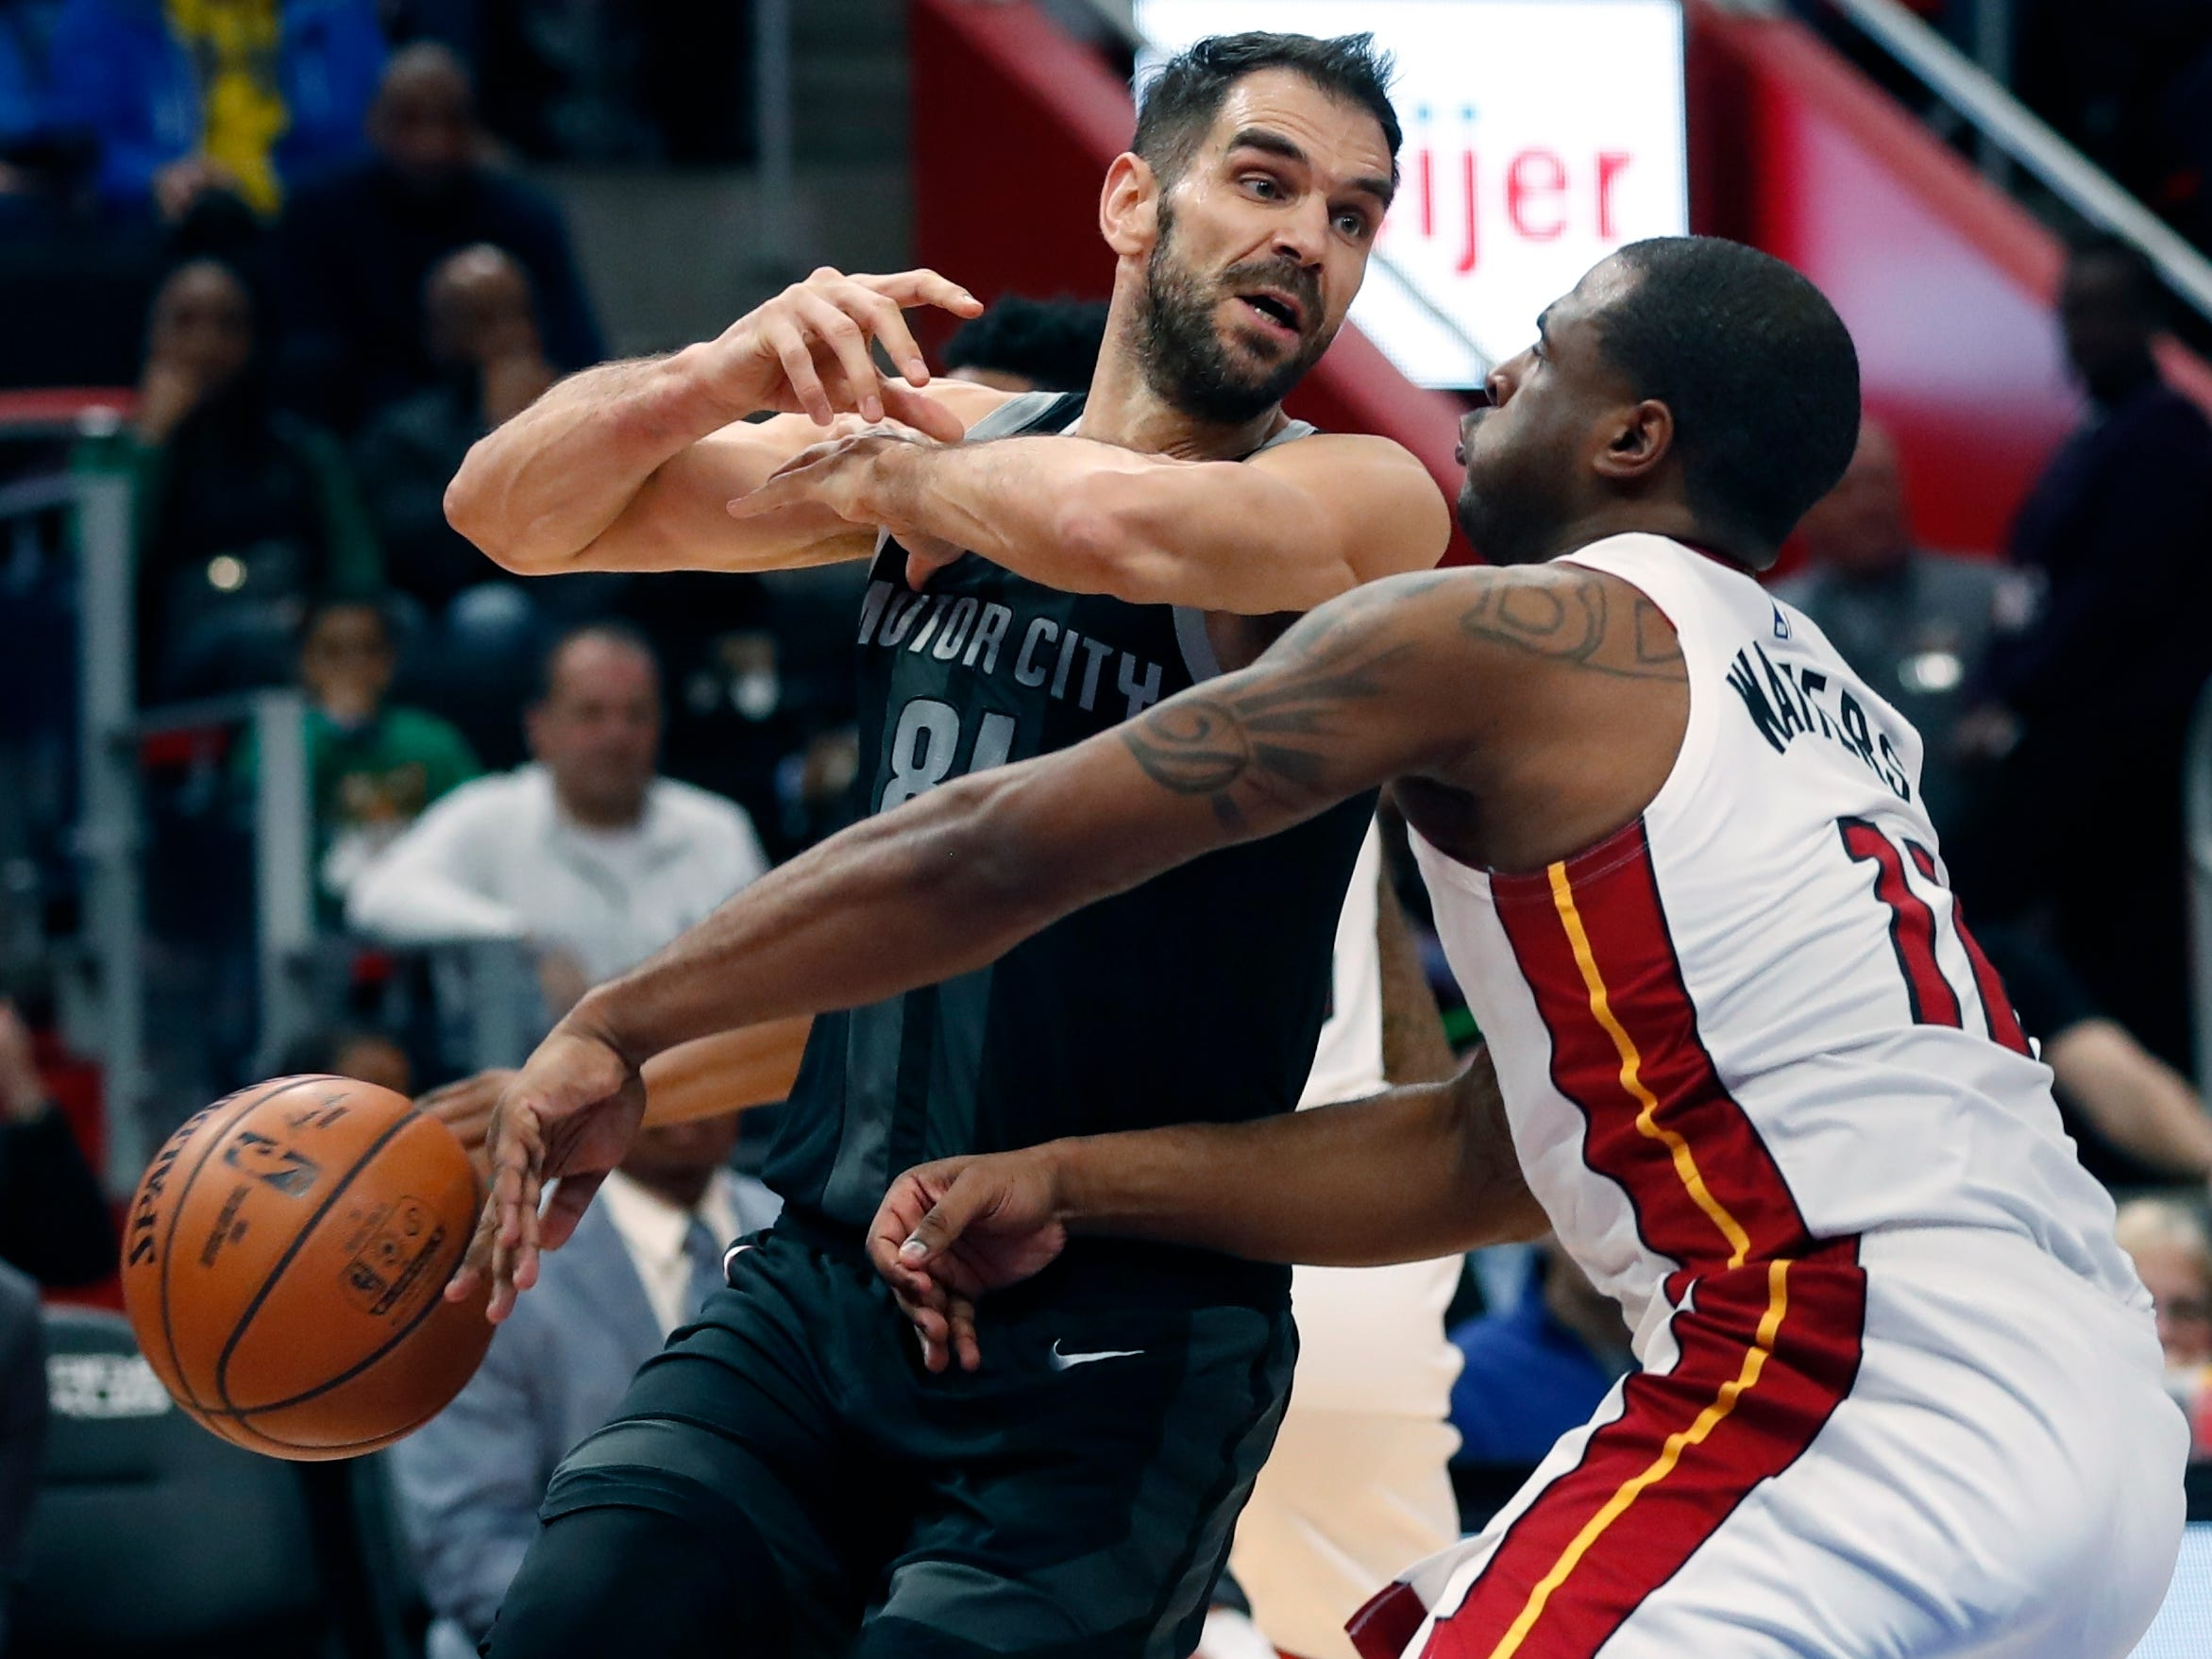 Miami Heat guard Dion Waiters (11) knocks the ball away from Detroit Pistons guard Jose Calderon (81) during the first half.